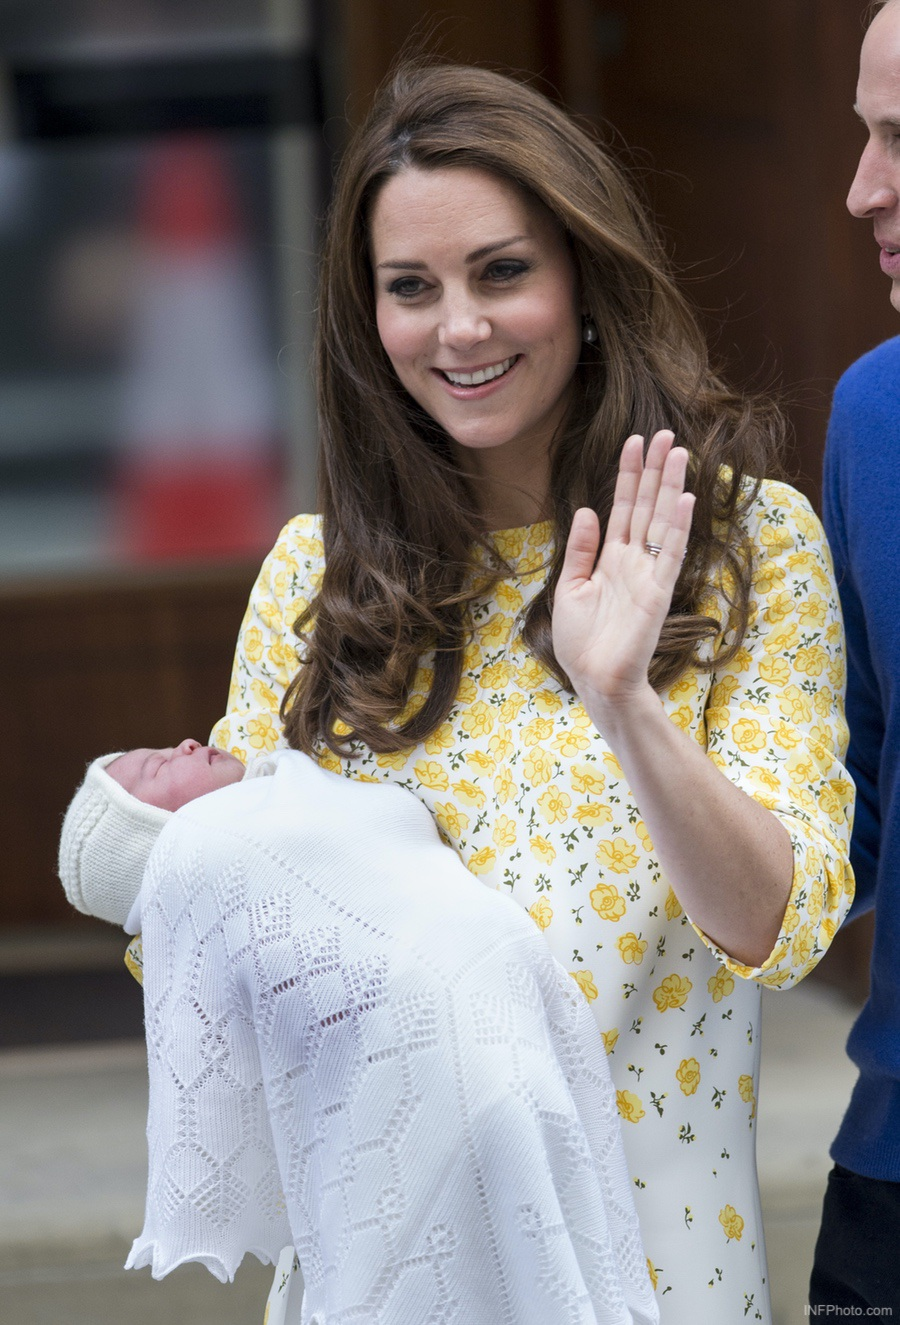 Kate Middleton holding her baby, Princess Charlotte of Cambridge